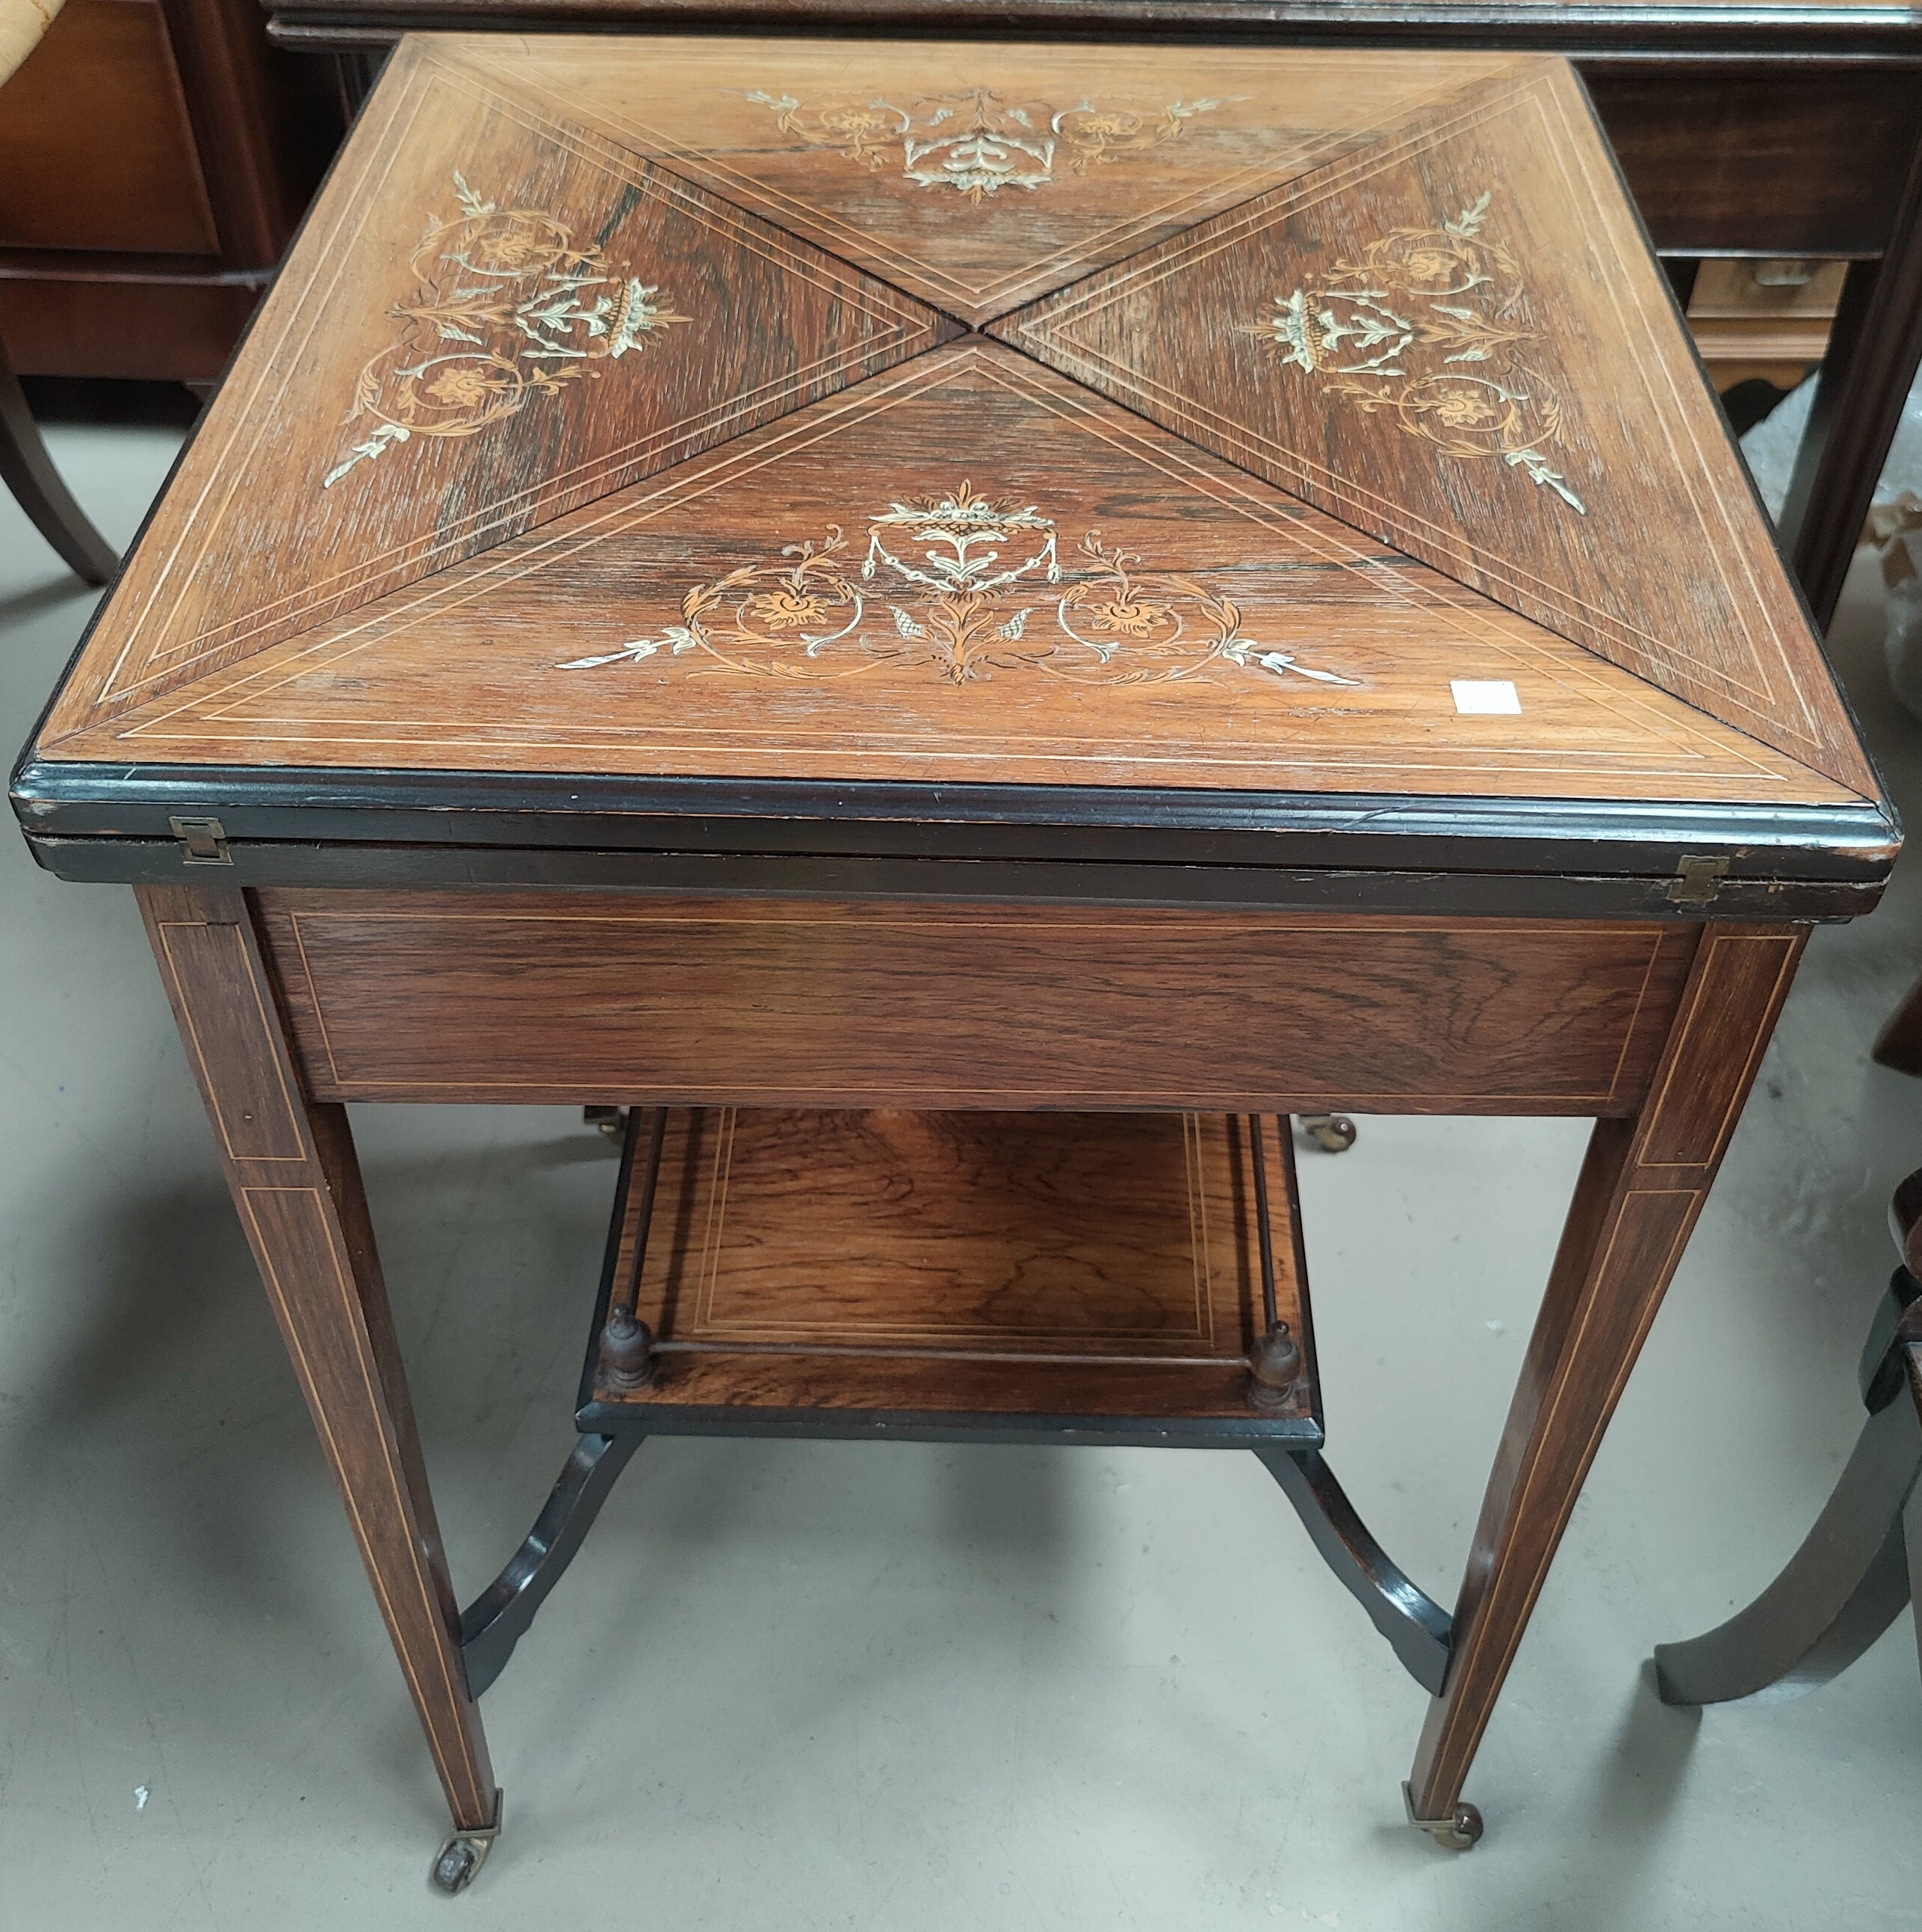 A Victorian Rosewood envelope card table with floral inlay to the top with satinwood inlay with